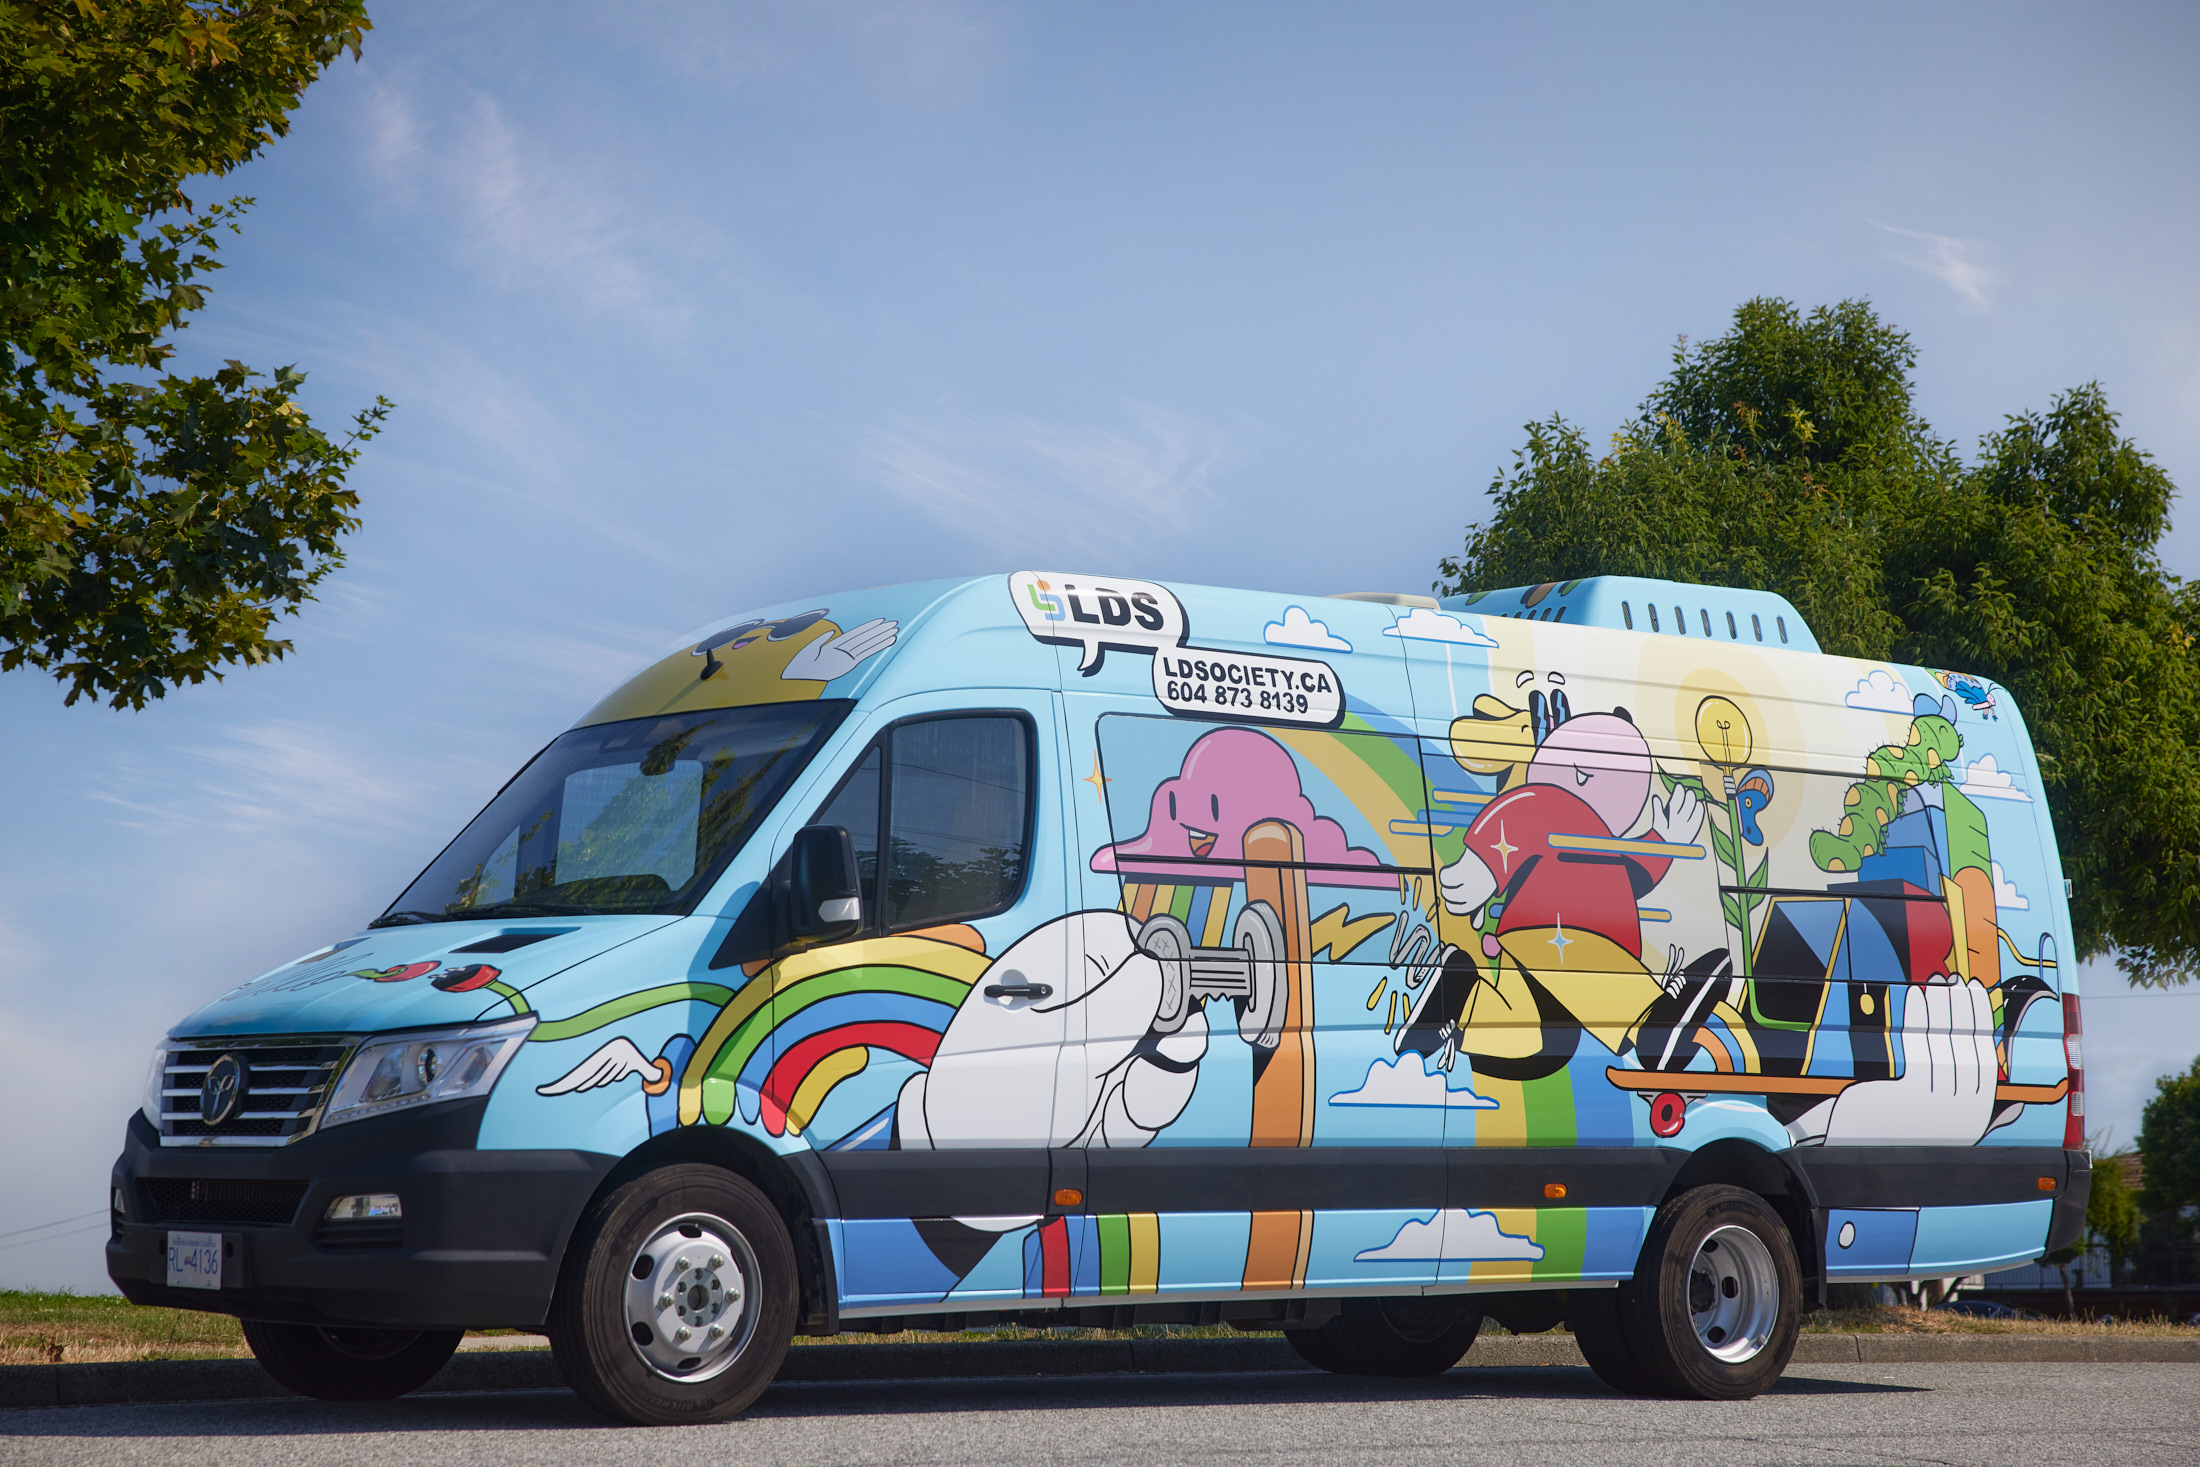 The LDS Access bus is baby blue with a bright, colourful graphic on the sides and back.